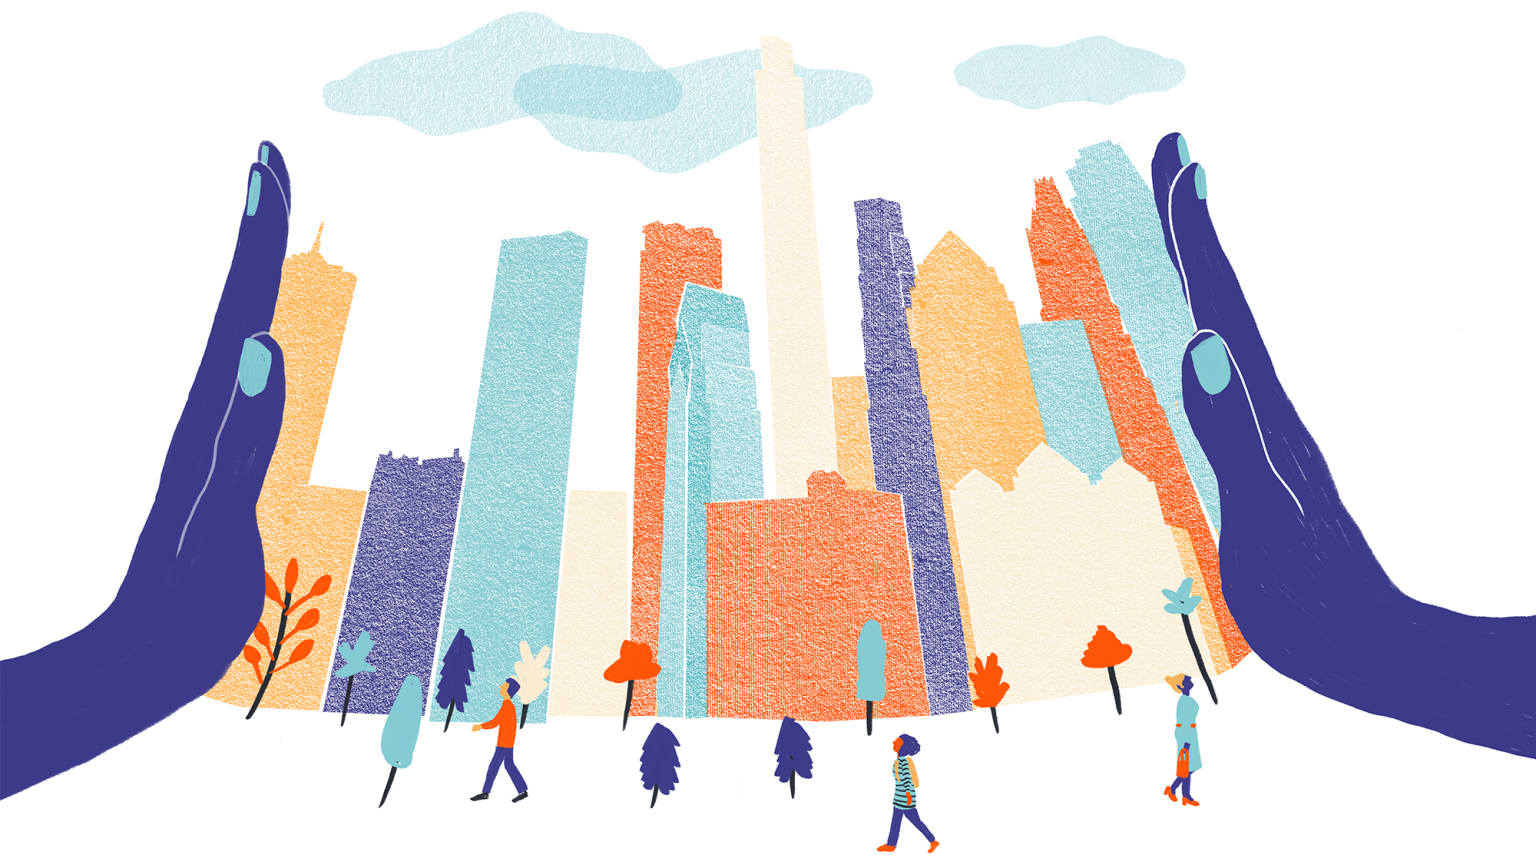 Illustration for curbed.com